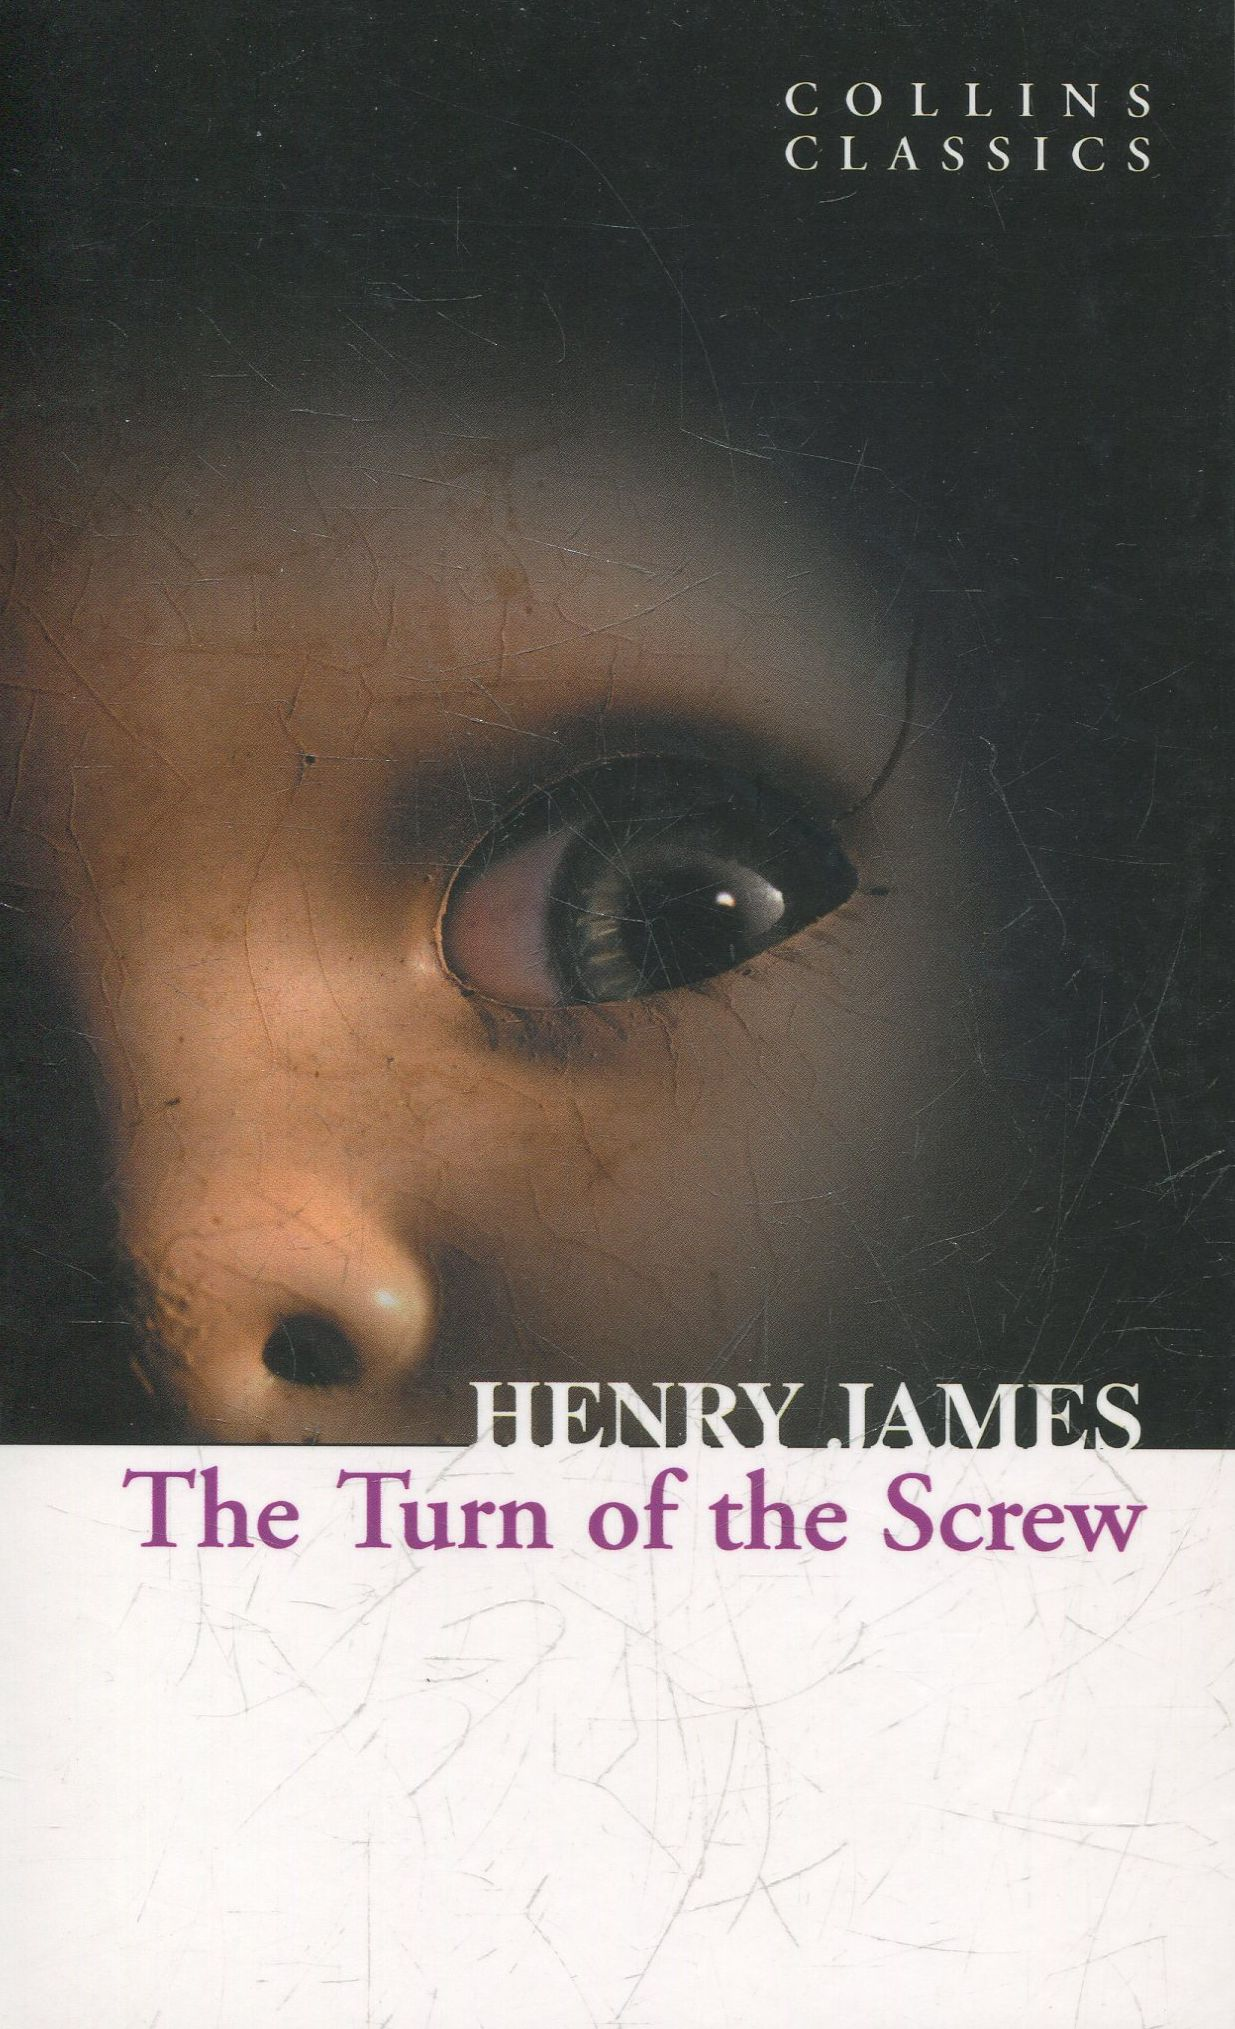 the turn of the screw by The turn of the screw (dover thrift editions) [henry james] on amazoncom free shipping on qualifying offers widely recognized as one of literature's most gripping ghost stories, this classic tale of moral degradation concerns the sinister transformation of two innocent children into flagrant liars and hypocrites.